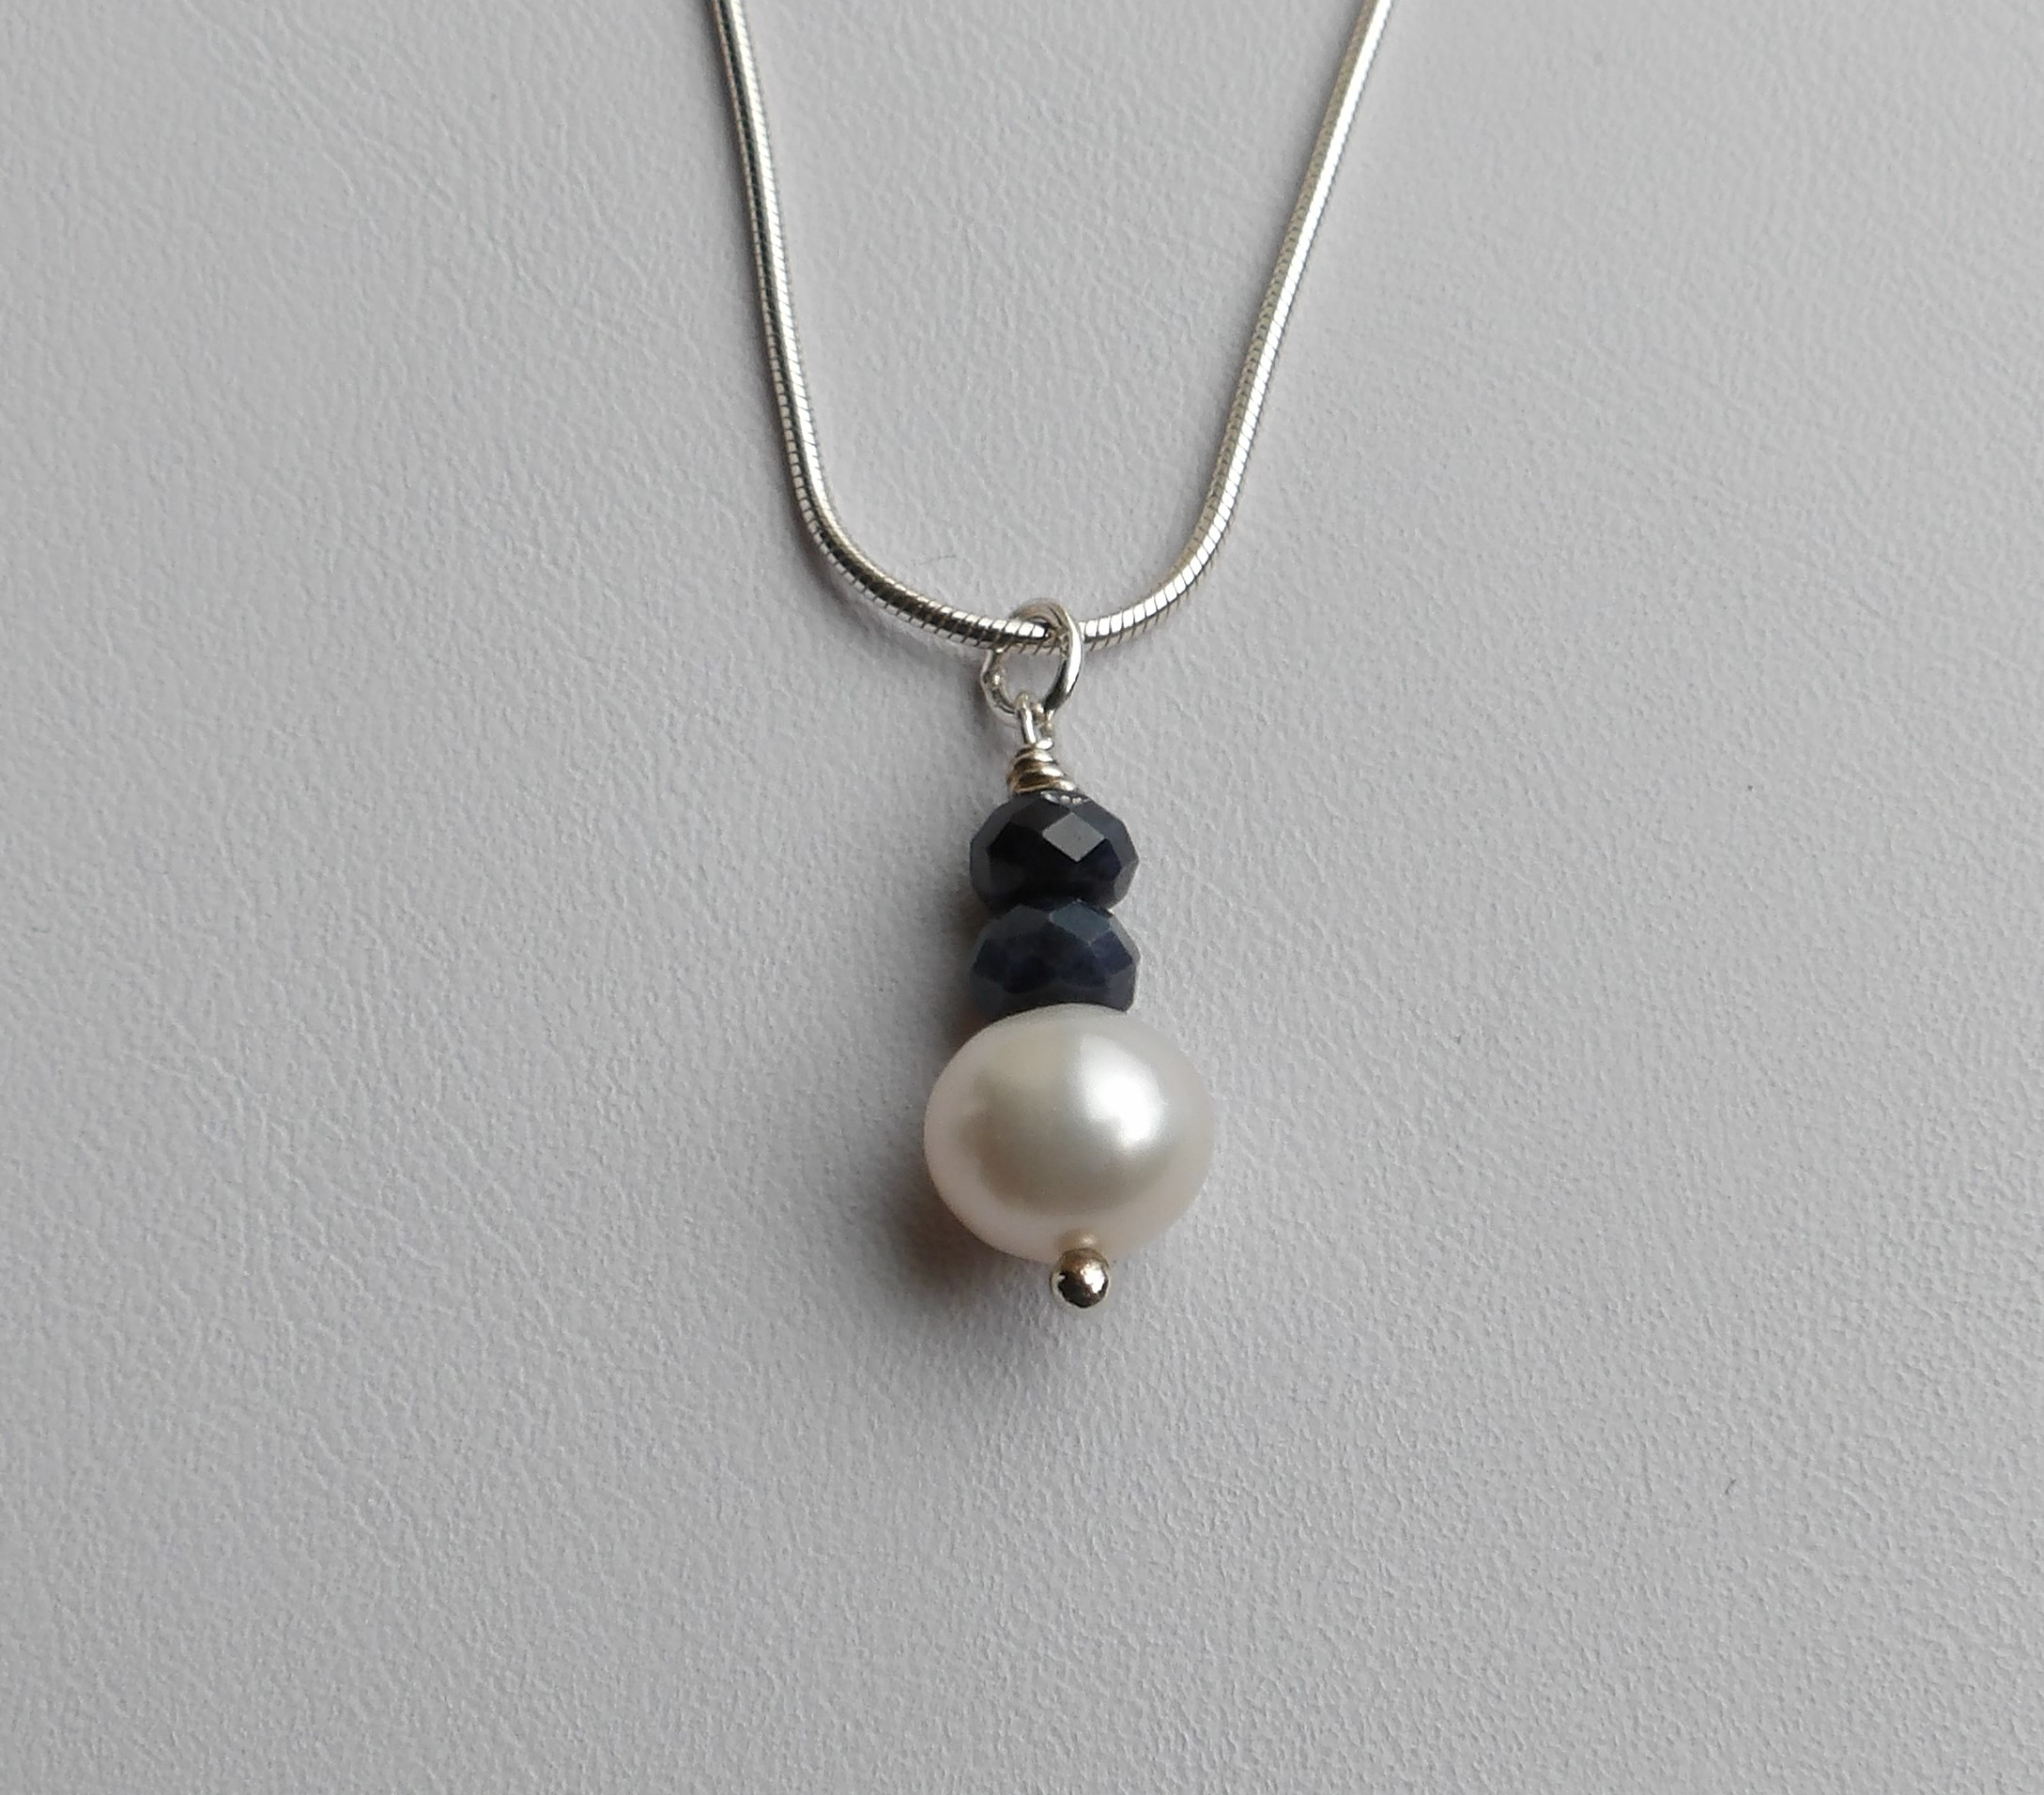 etsy freshwater favorite single necklace minimalist from in pearl jewelry bridesmaid personal pin shop pendant com listing law gift my bridal s mother a